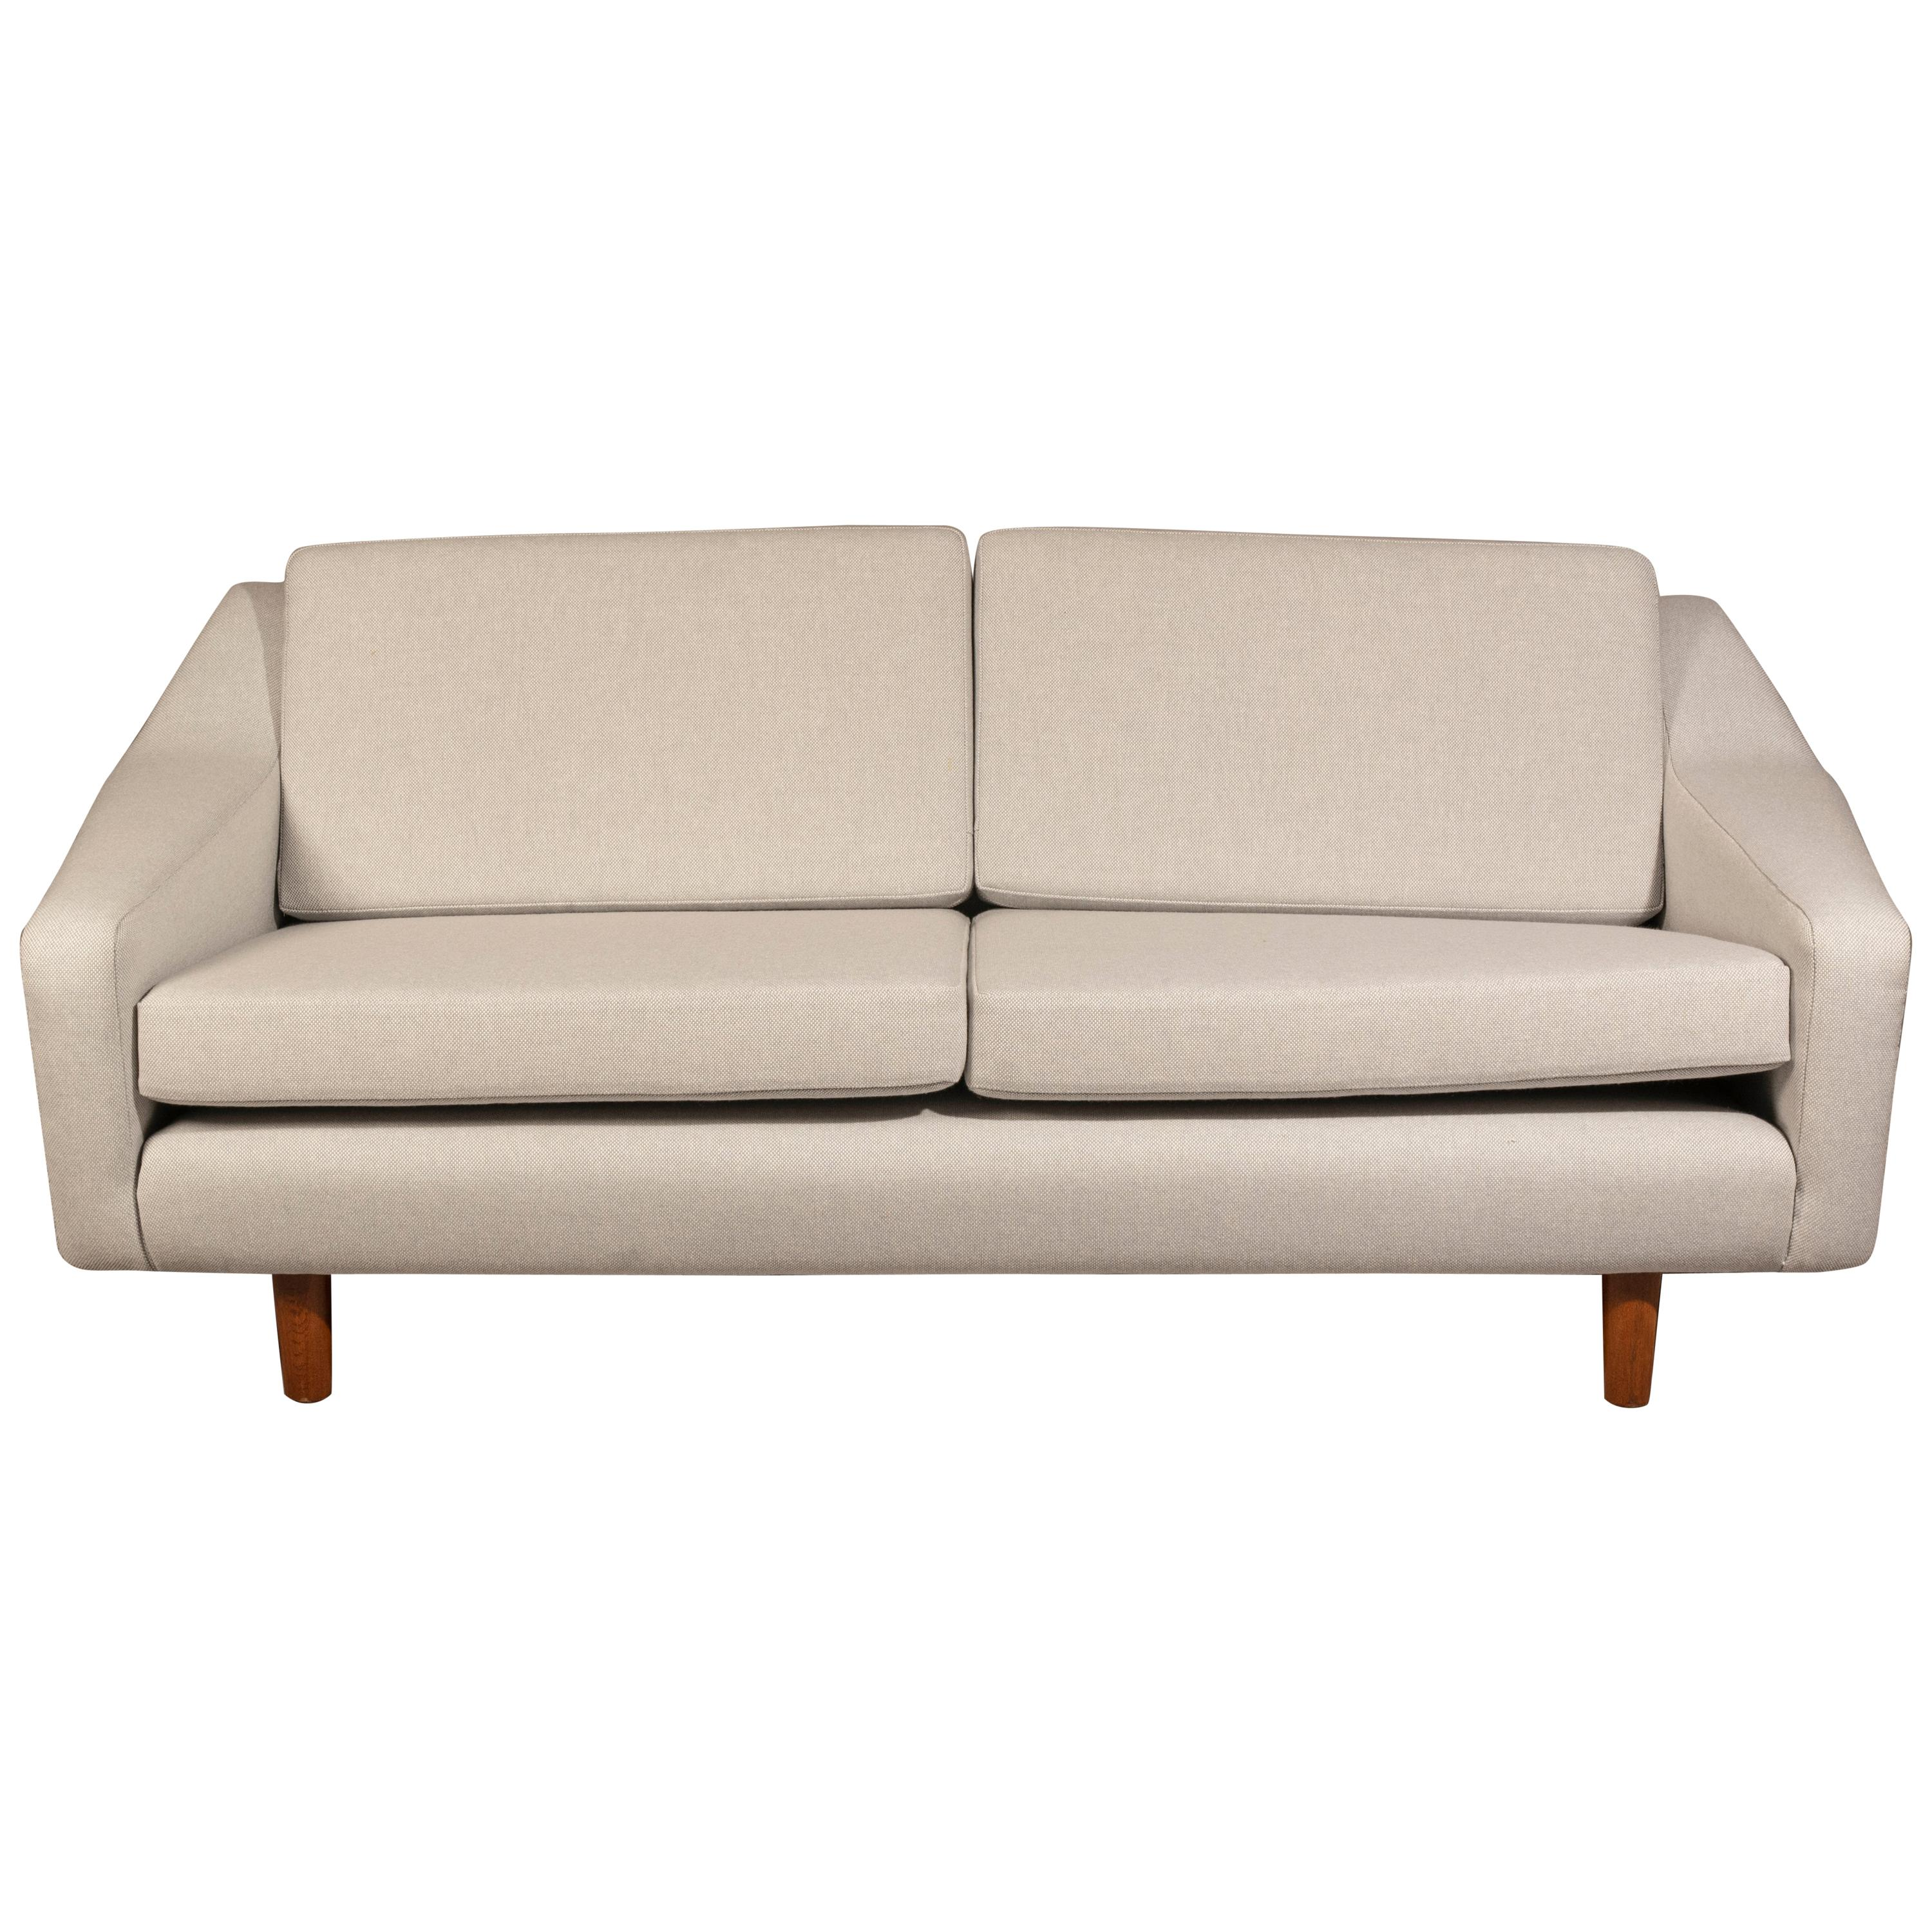 Two-Seat Sofa, Denmark 1960s, Reupholstered in Kvadrat Fabric